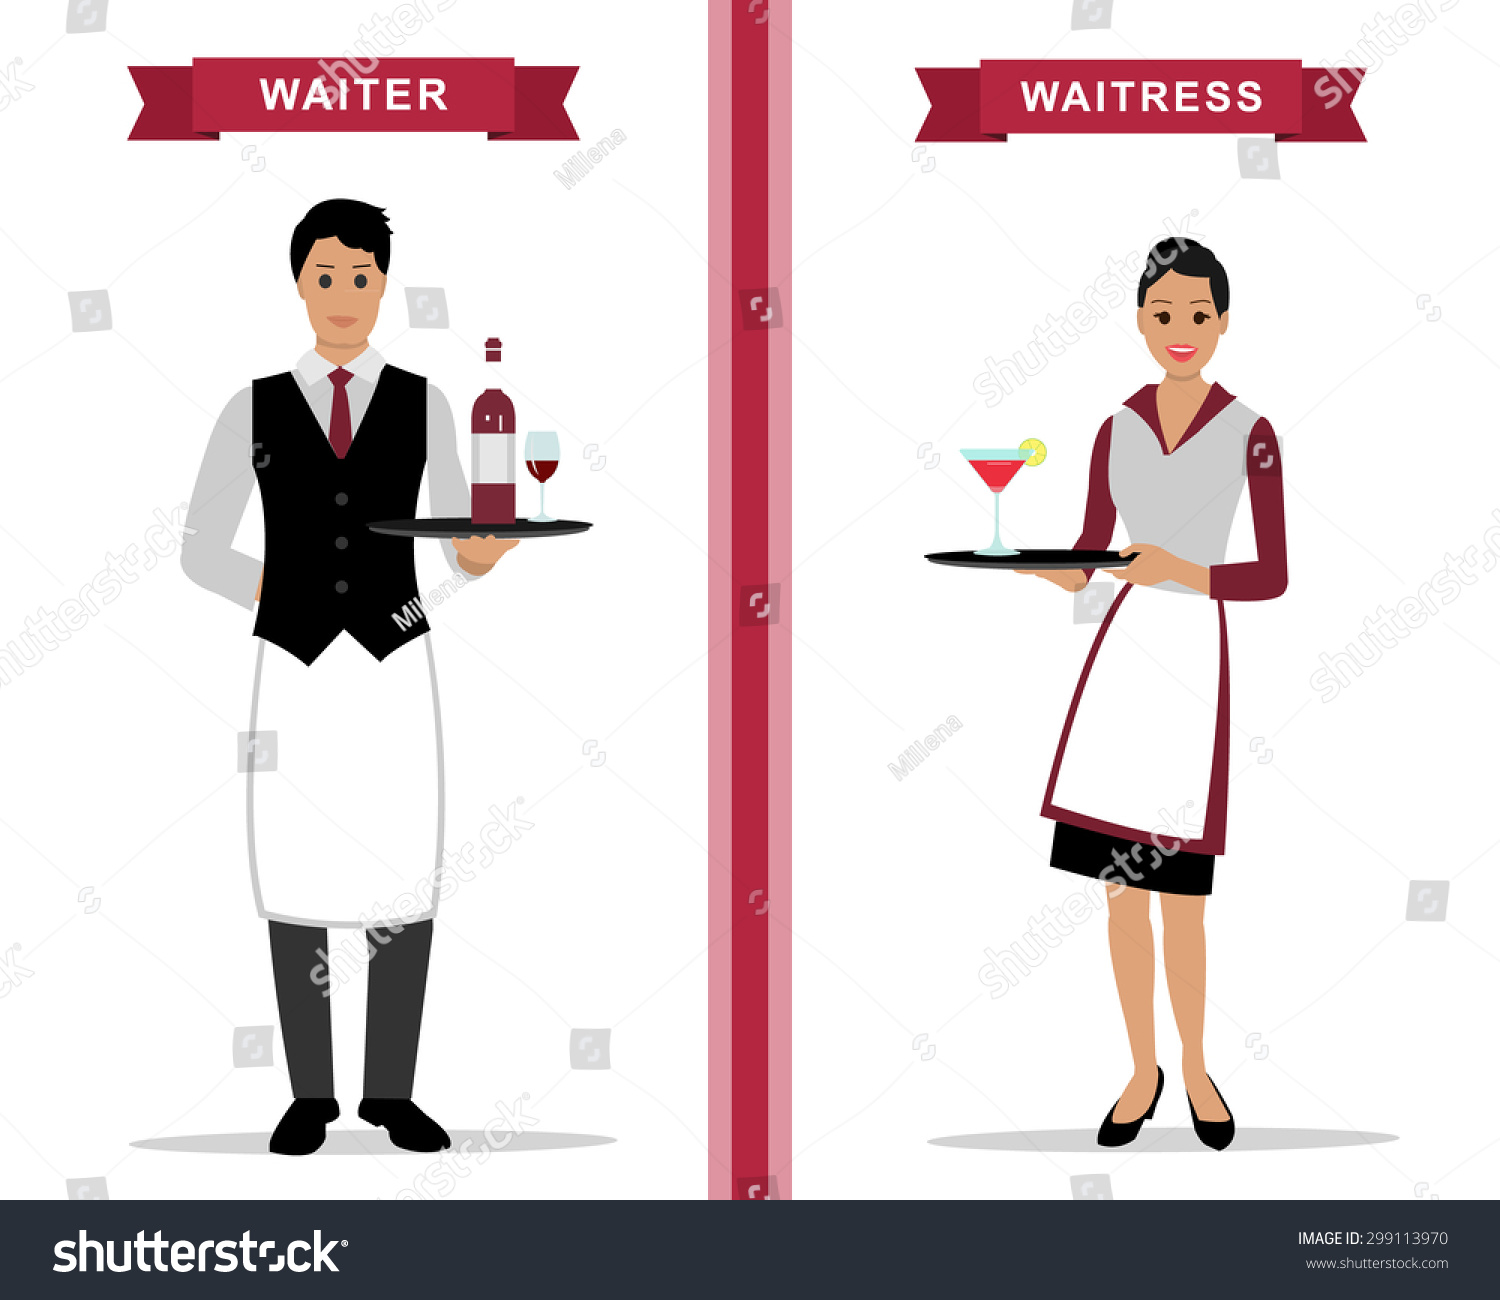 Waiters and waitresses clipart image royalty free library Collection of 14 free Waitress clipart waiteress bill ... image royalty free library